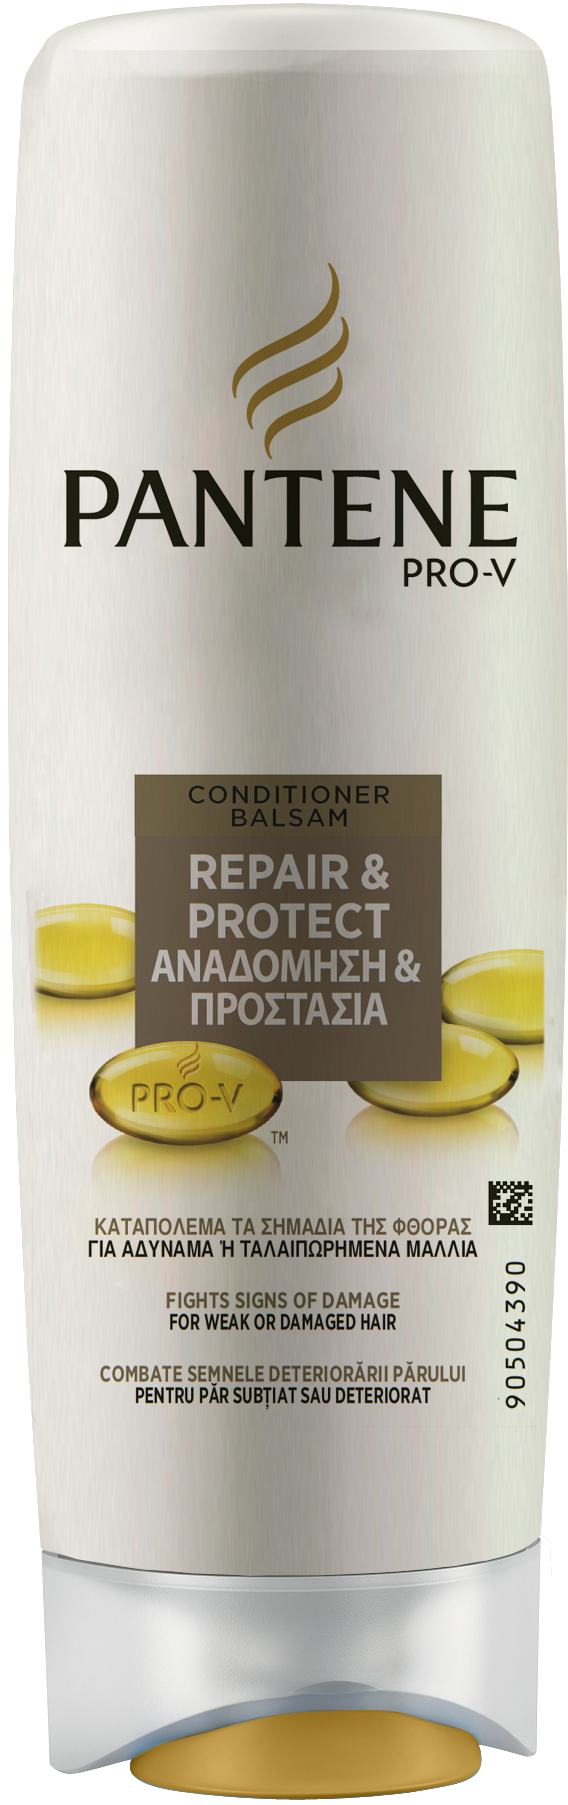 conditioner-rapairprotect-200